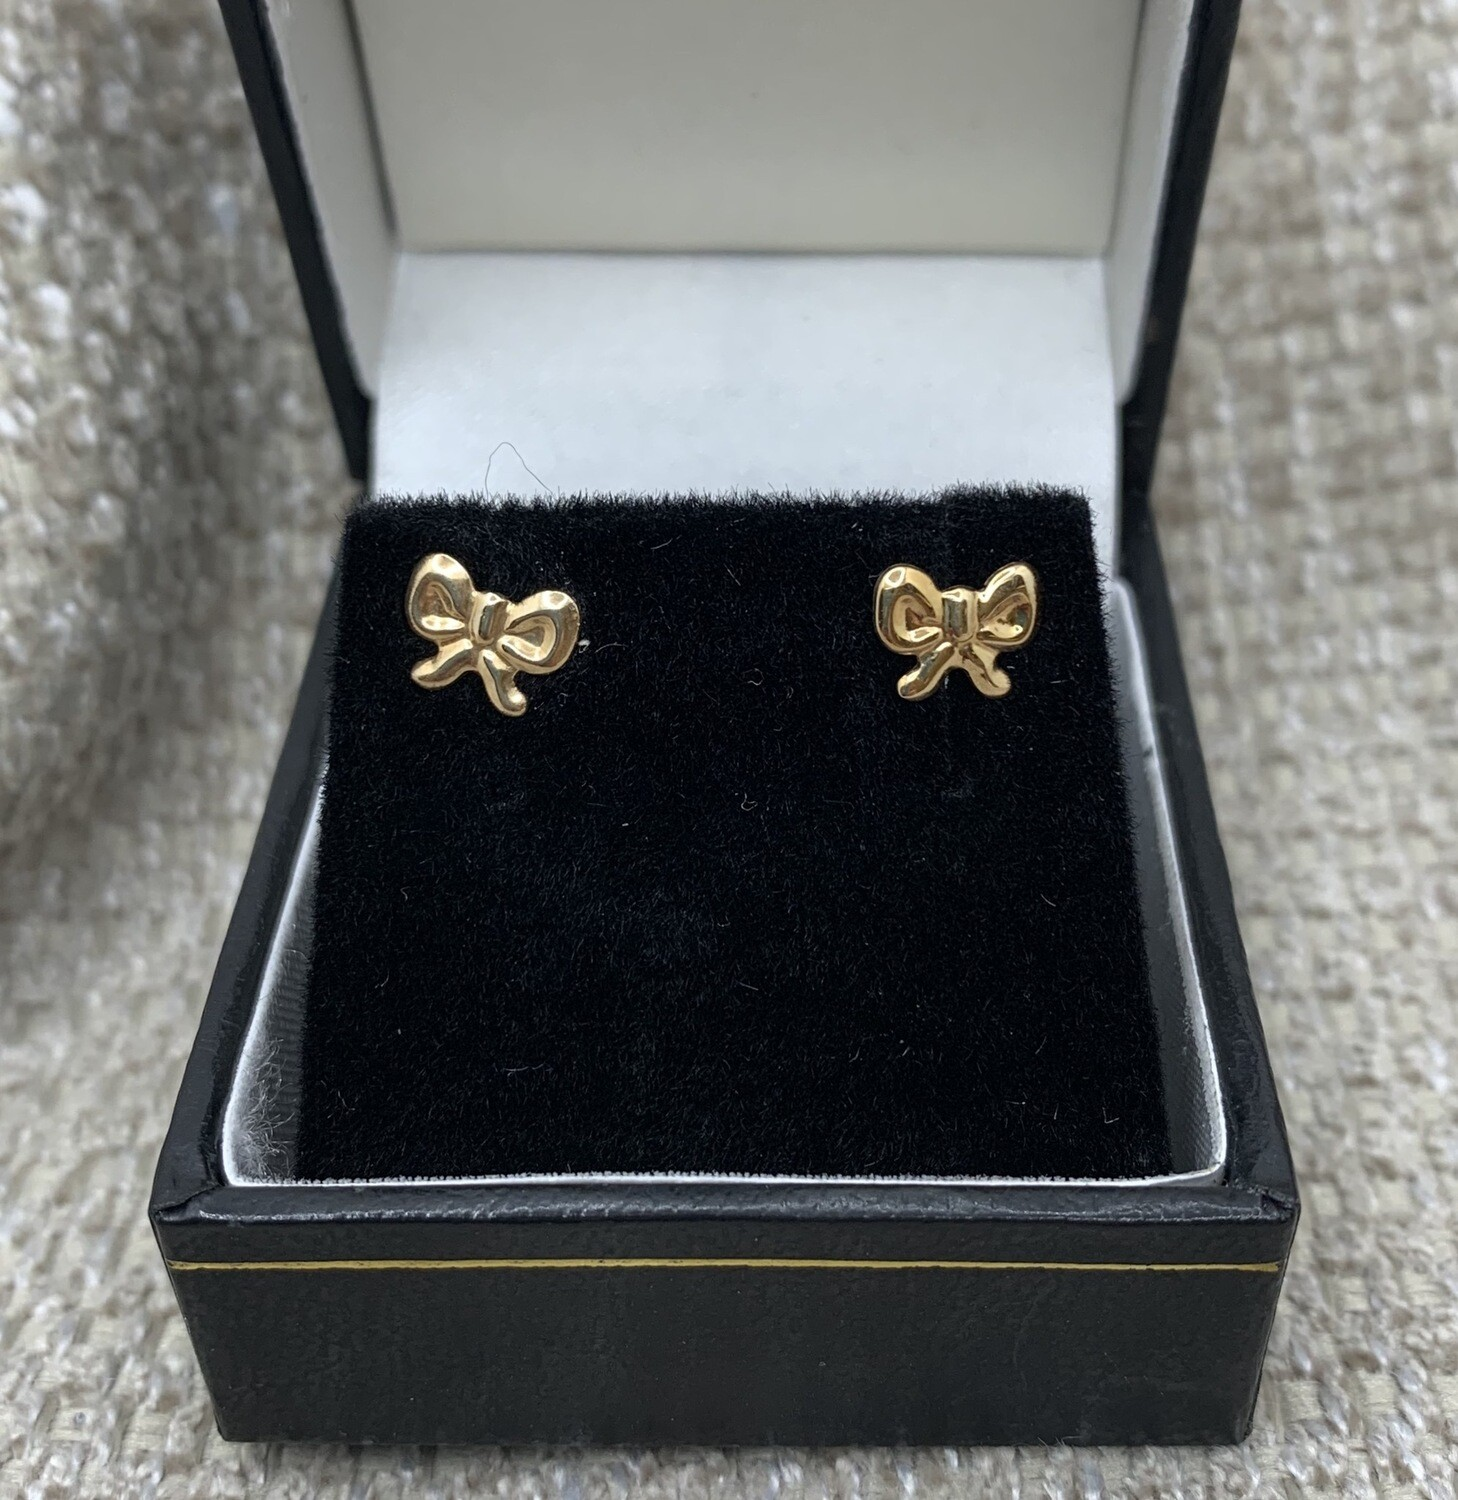 14k Gold Bows Post Earrings